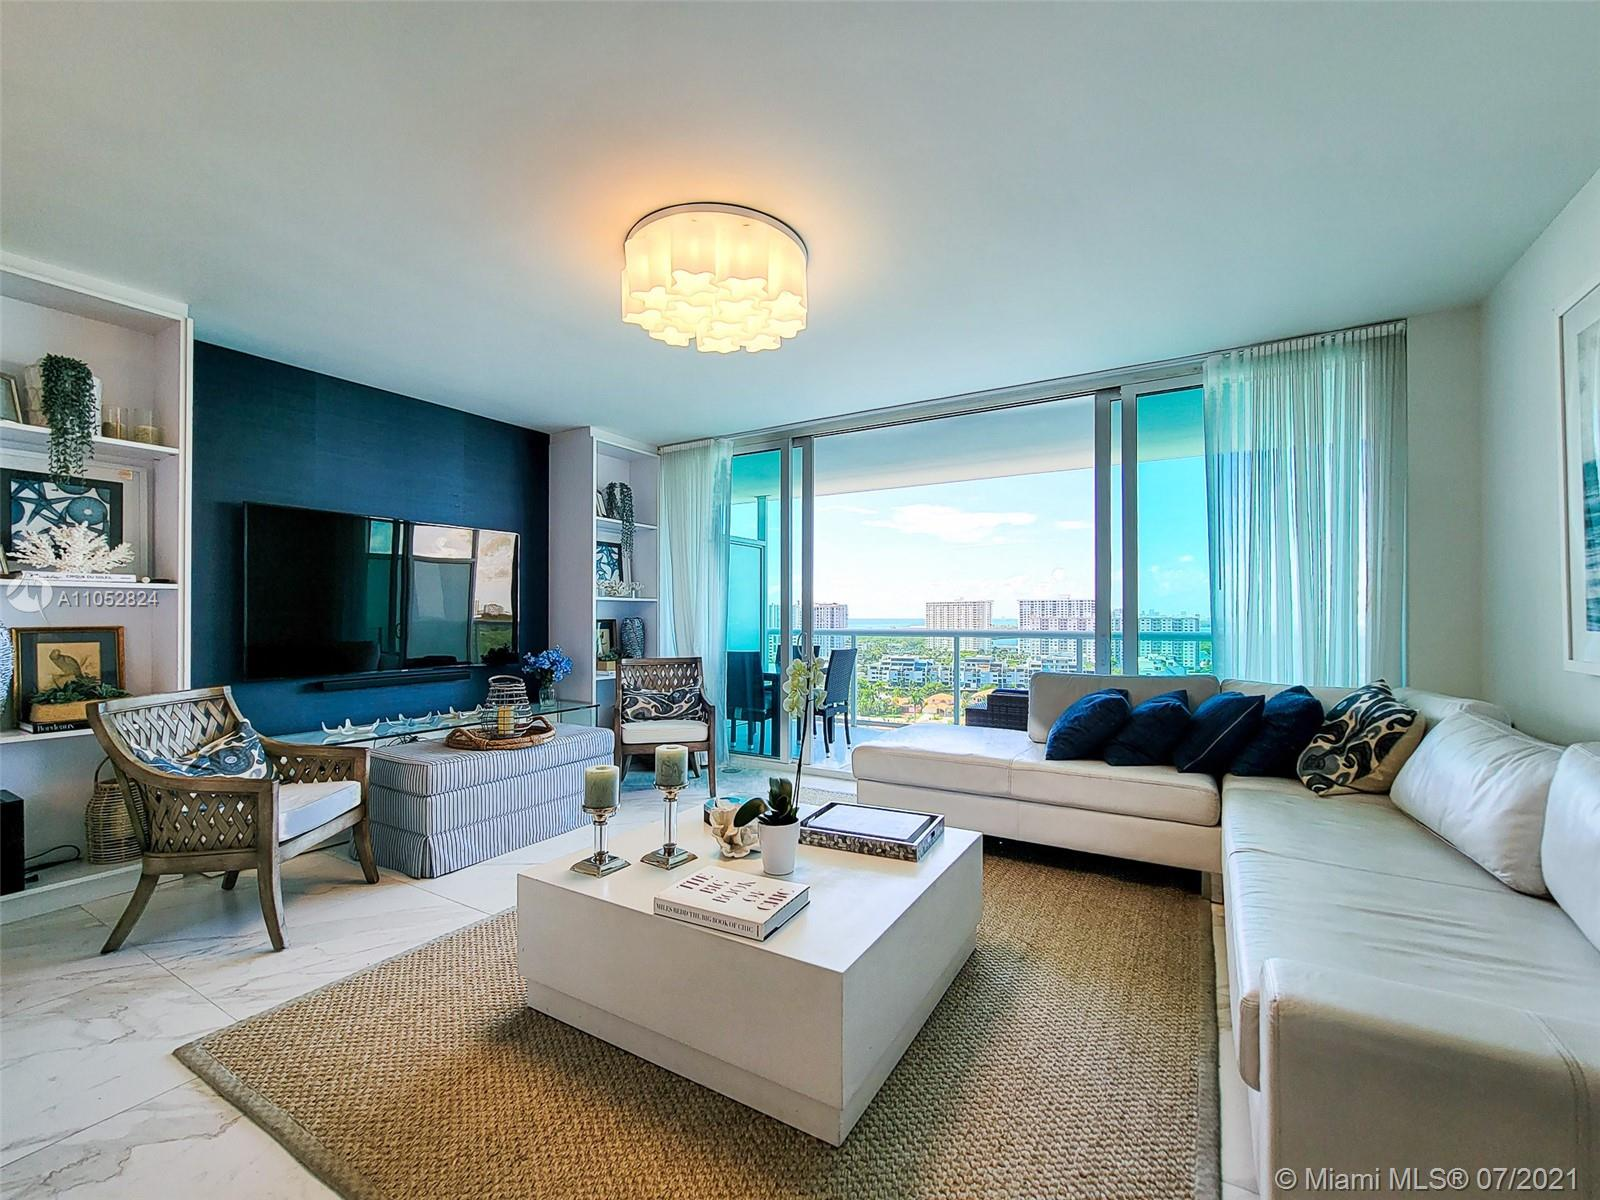 Beautifully Decorated Waterfront unit. Great, spacious floor plan, modern and yet cozy. This walking distance to the Beach Building offers hotel lifestyle amenities such as Concierge Services, Valet, Gym, SPA, Boat Marina and more. Beach service is available as well as transportation to/from the beach. Assigned parking and valet. Showings starts on June 8, 2021. Call us to learn how you can call this HOME.